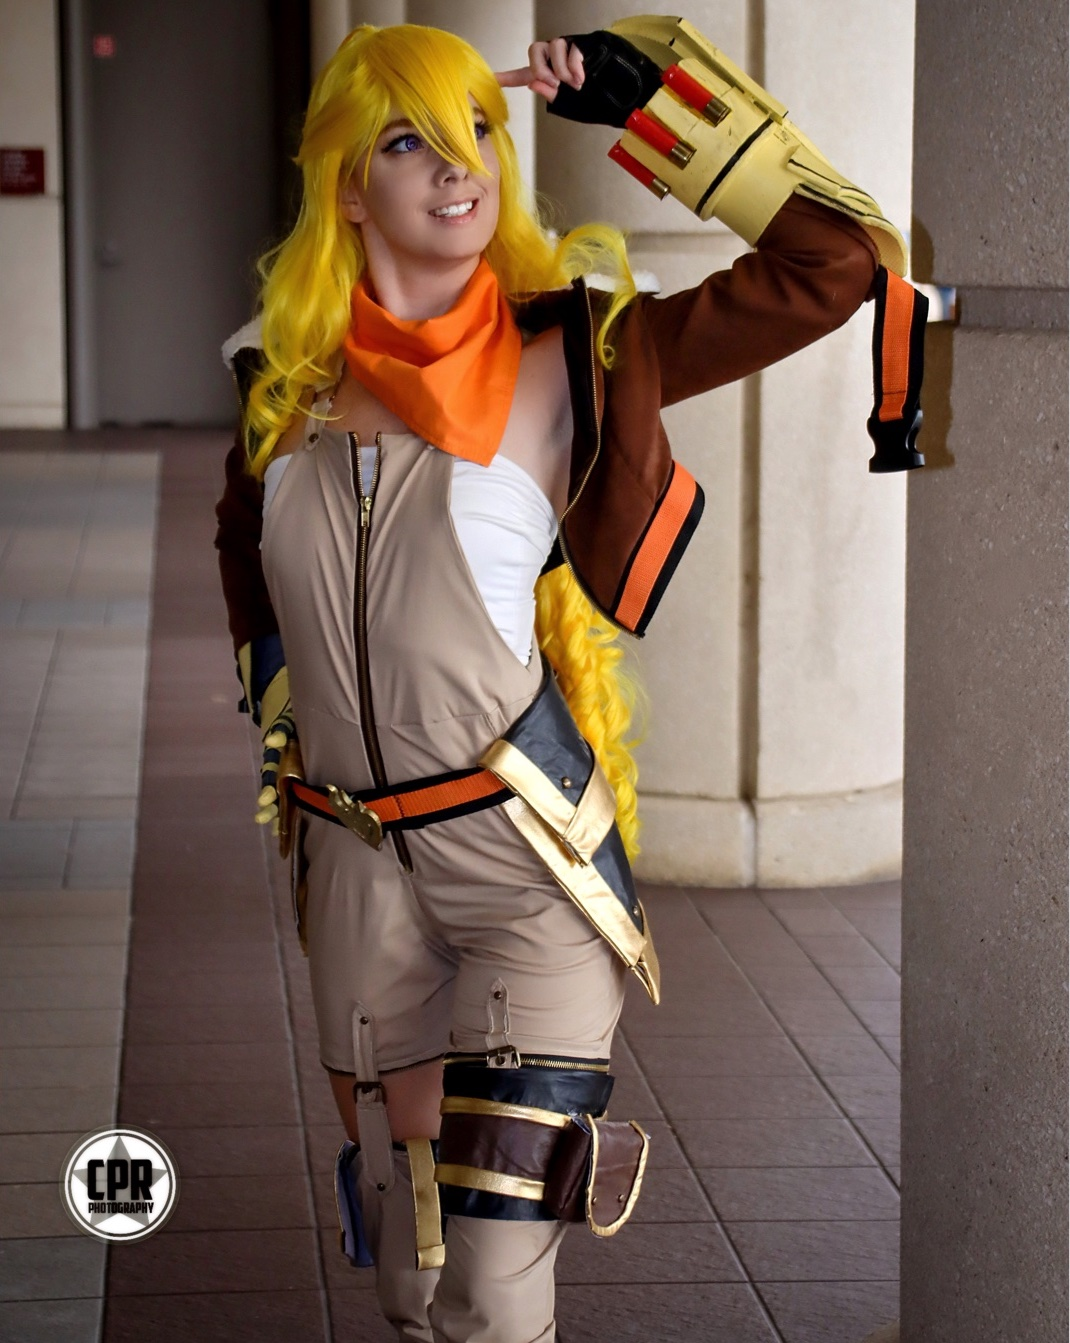 Full photo of Christina in the Yang costume in front of some columns